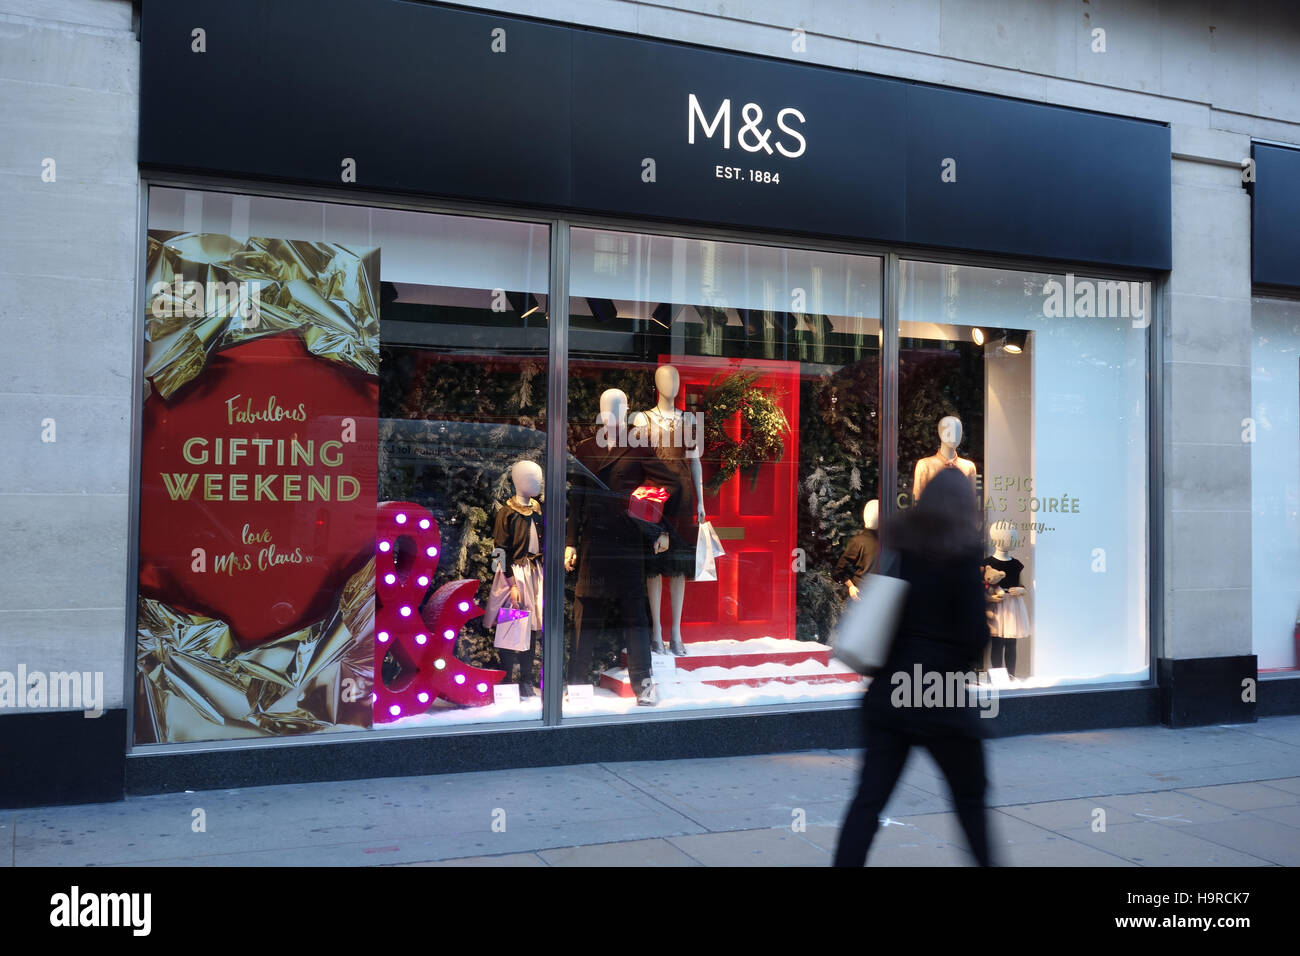 London, UK. 25th Nov, 2016. Retailers on Oxford Street offer additional discounts for Black Friday in the run up - Stock Image